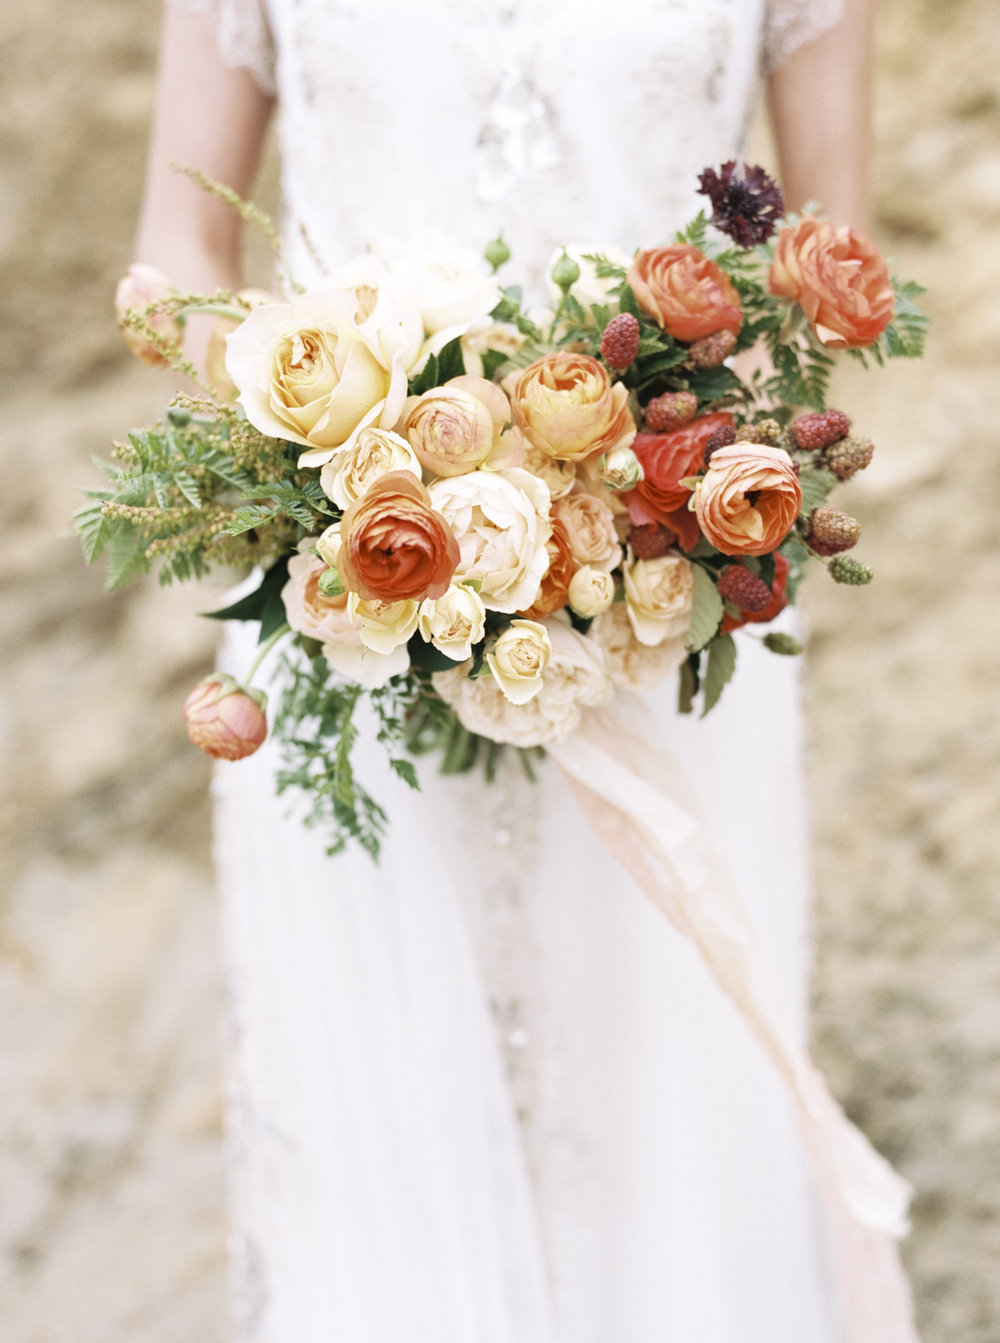 Image by Taralynn Lawton  / Florals by Wilder Floral Co. ©